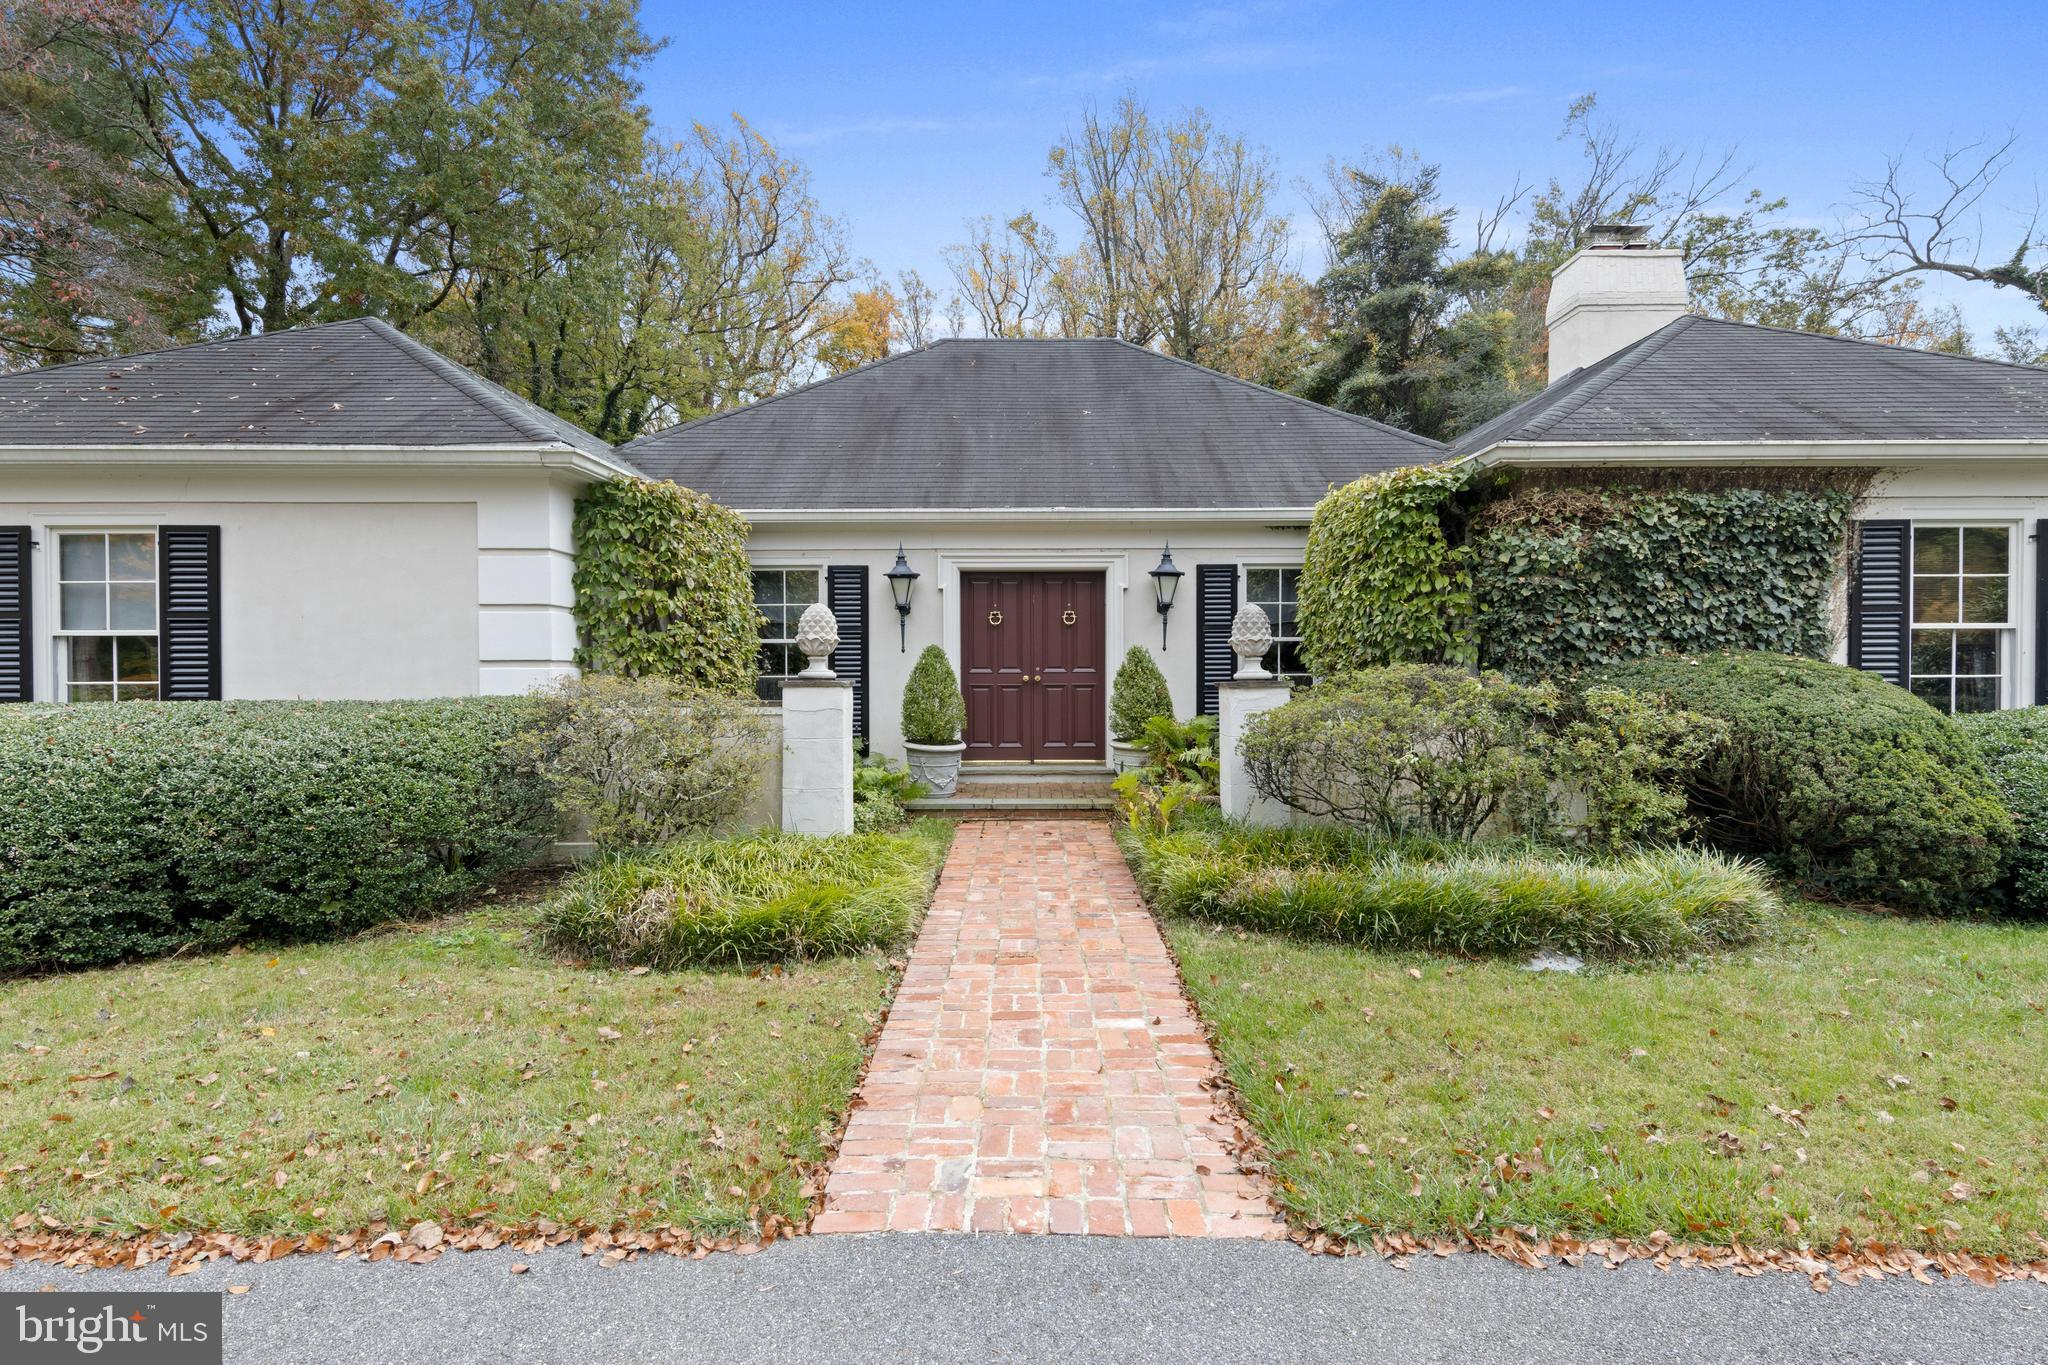 This elegant 2 BD, 2/1 BA French colonial is located on a level 1-acre property on a quiet, cul-de-sac street in northside Bryn Mawr. A transverse Entrance Hall is open to the heart of the home - a large Living Room with soaring tray ceiling and French doors to the rear Sunroom. The right side of this one-story home has a charming Family Room with fireplace, built-ins, and wet bar. This wing also has a formal Dining Room with beautiful designer finishes, well-appointed Powder Room, Kitchen with Breakfast Room & Pantries, Laundry/Mudroom, and direct access to the attached, oversized 2-car Garage. The left wing features a spacious Master Bedroom suite with sitting area and 2 large walk-in closets. You'll love unwinding in the luxurious Master BA with loads of storage, large shower, and separate jetted tub. The 2nd Bedroom has 2 walk-in closets (one cedar) and en suite 2nd full BA. Enjoy relaxing at home on the secluded brick courtyard which is accessible from the Sunroom, Kitchen, and Master BD. The professionally-landscaped property features many specimen trees, flowering perennials, and garden accents. A large grassy side yard offers ample room for recreation, gardening, or a pool. Mature perimeter plantings provide additional privacy. The lower level is partially-finished with a large Rec Room and storage abounds in the expansive unfinished Utility Room. Pre-inspected for peace of mind, this well-built stucco home has low maintenance, solid masonry construction.  A great alternative to condo and townhouse living, with wonderful potential for expansion… Open the Kitchen up to the Dining Room and use the formal Living Room as a more casual Great Room… or a 2nd floor could be added if you want more bedroom space. Minutes to shops, train, and hospital in downtown Bryn Mawr, and to highly-ranked Lower Merion schools, corporate centers, Center City and Airport.